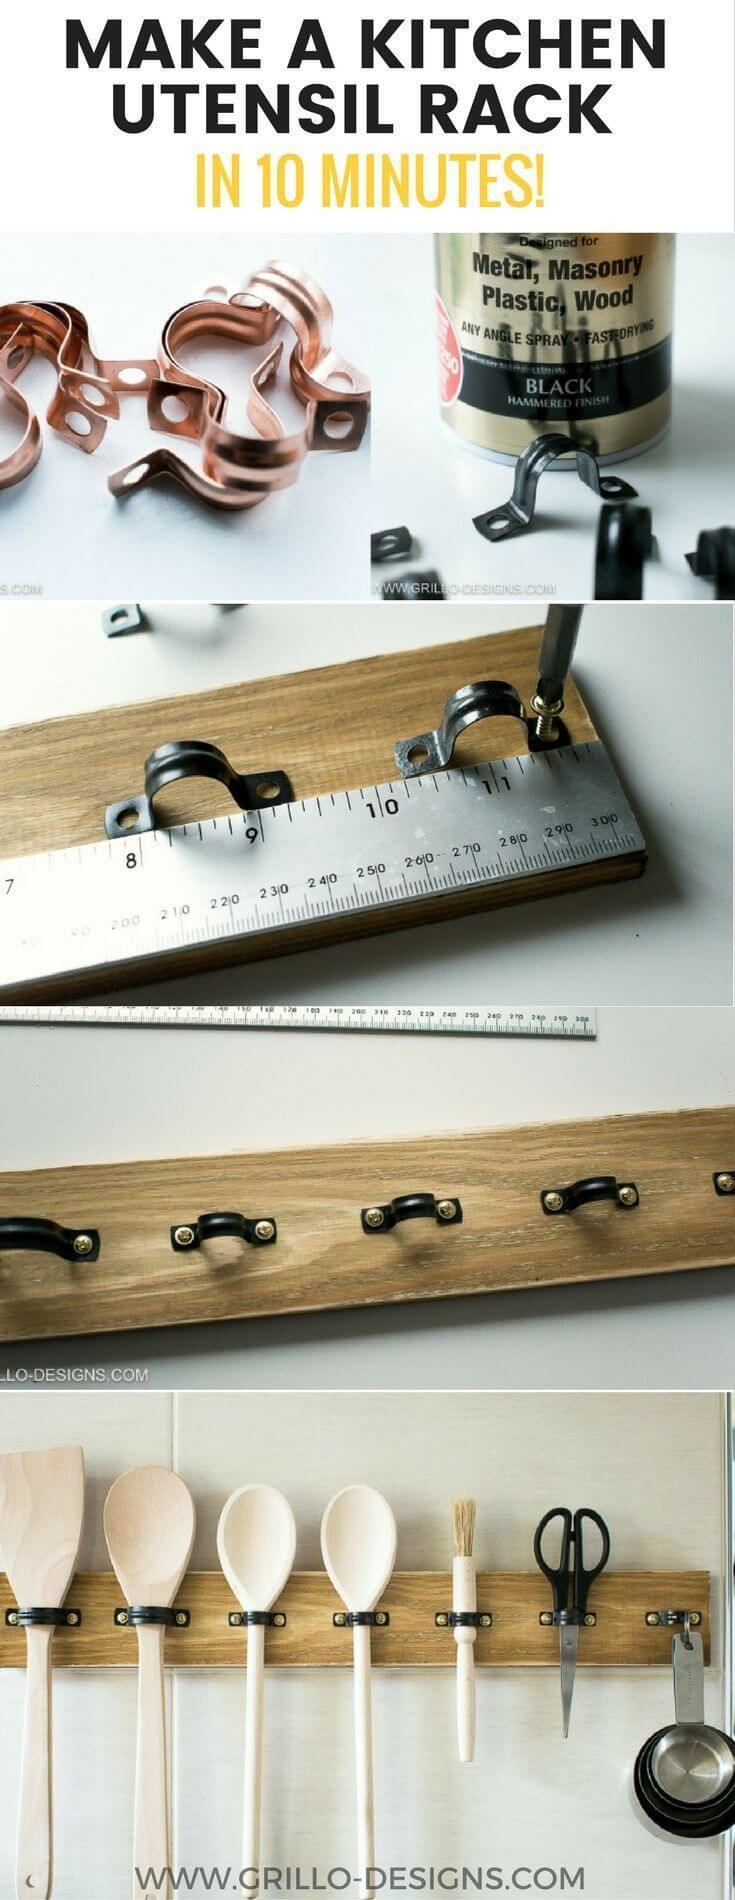 Easy To Make Kitchen Utensil Rack